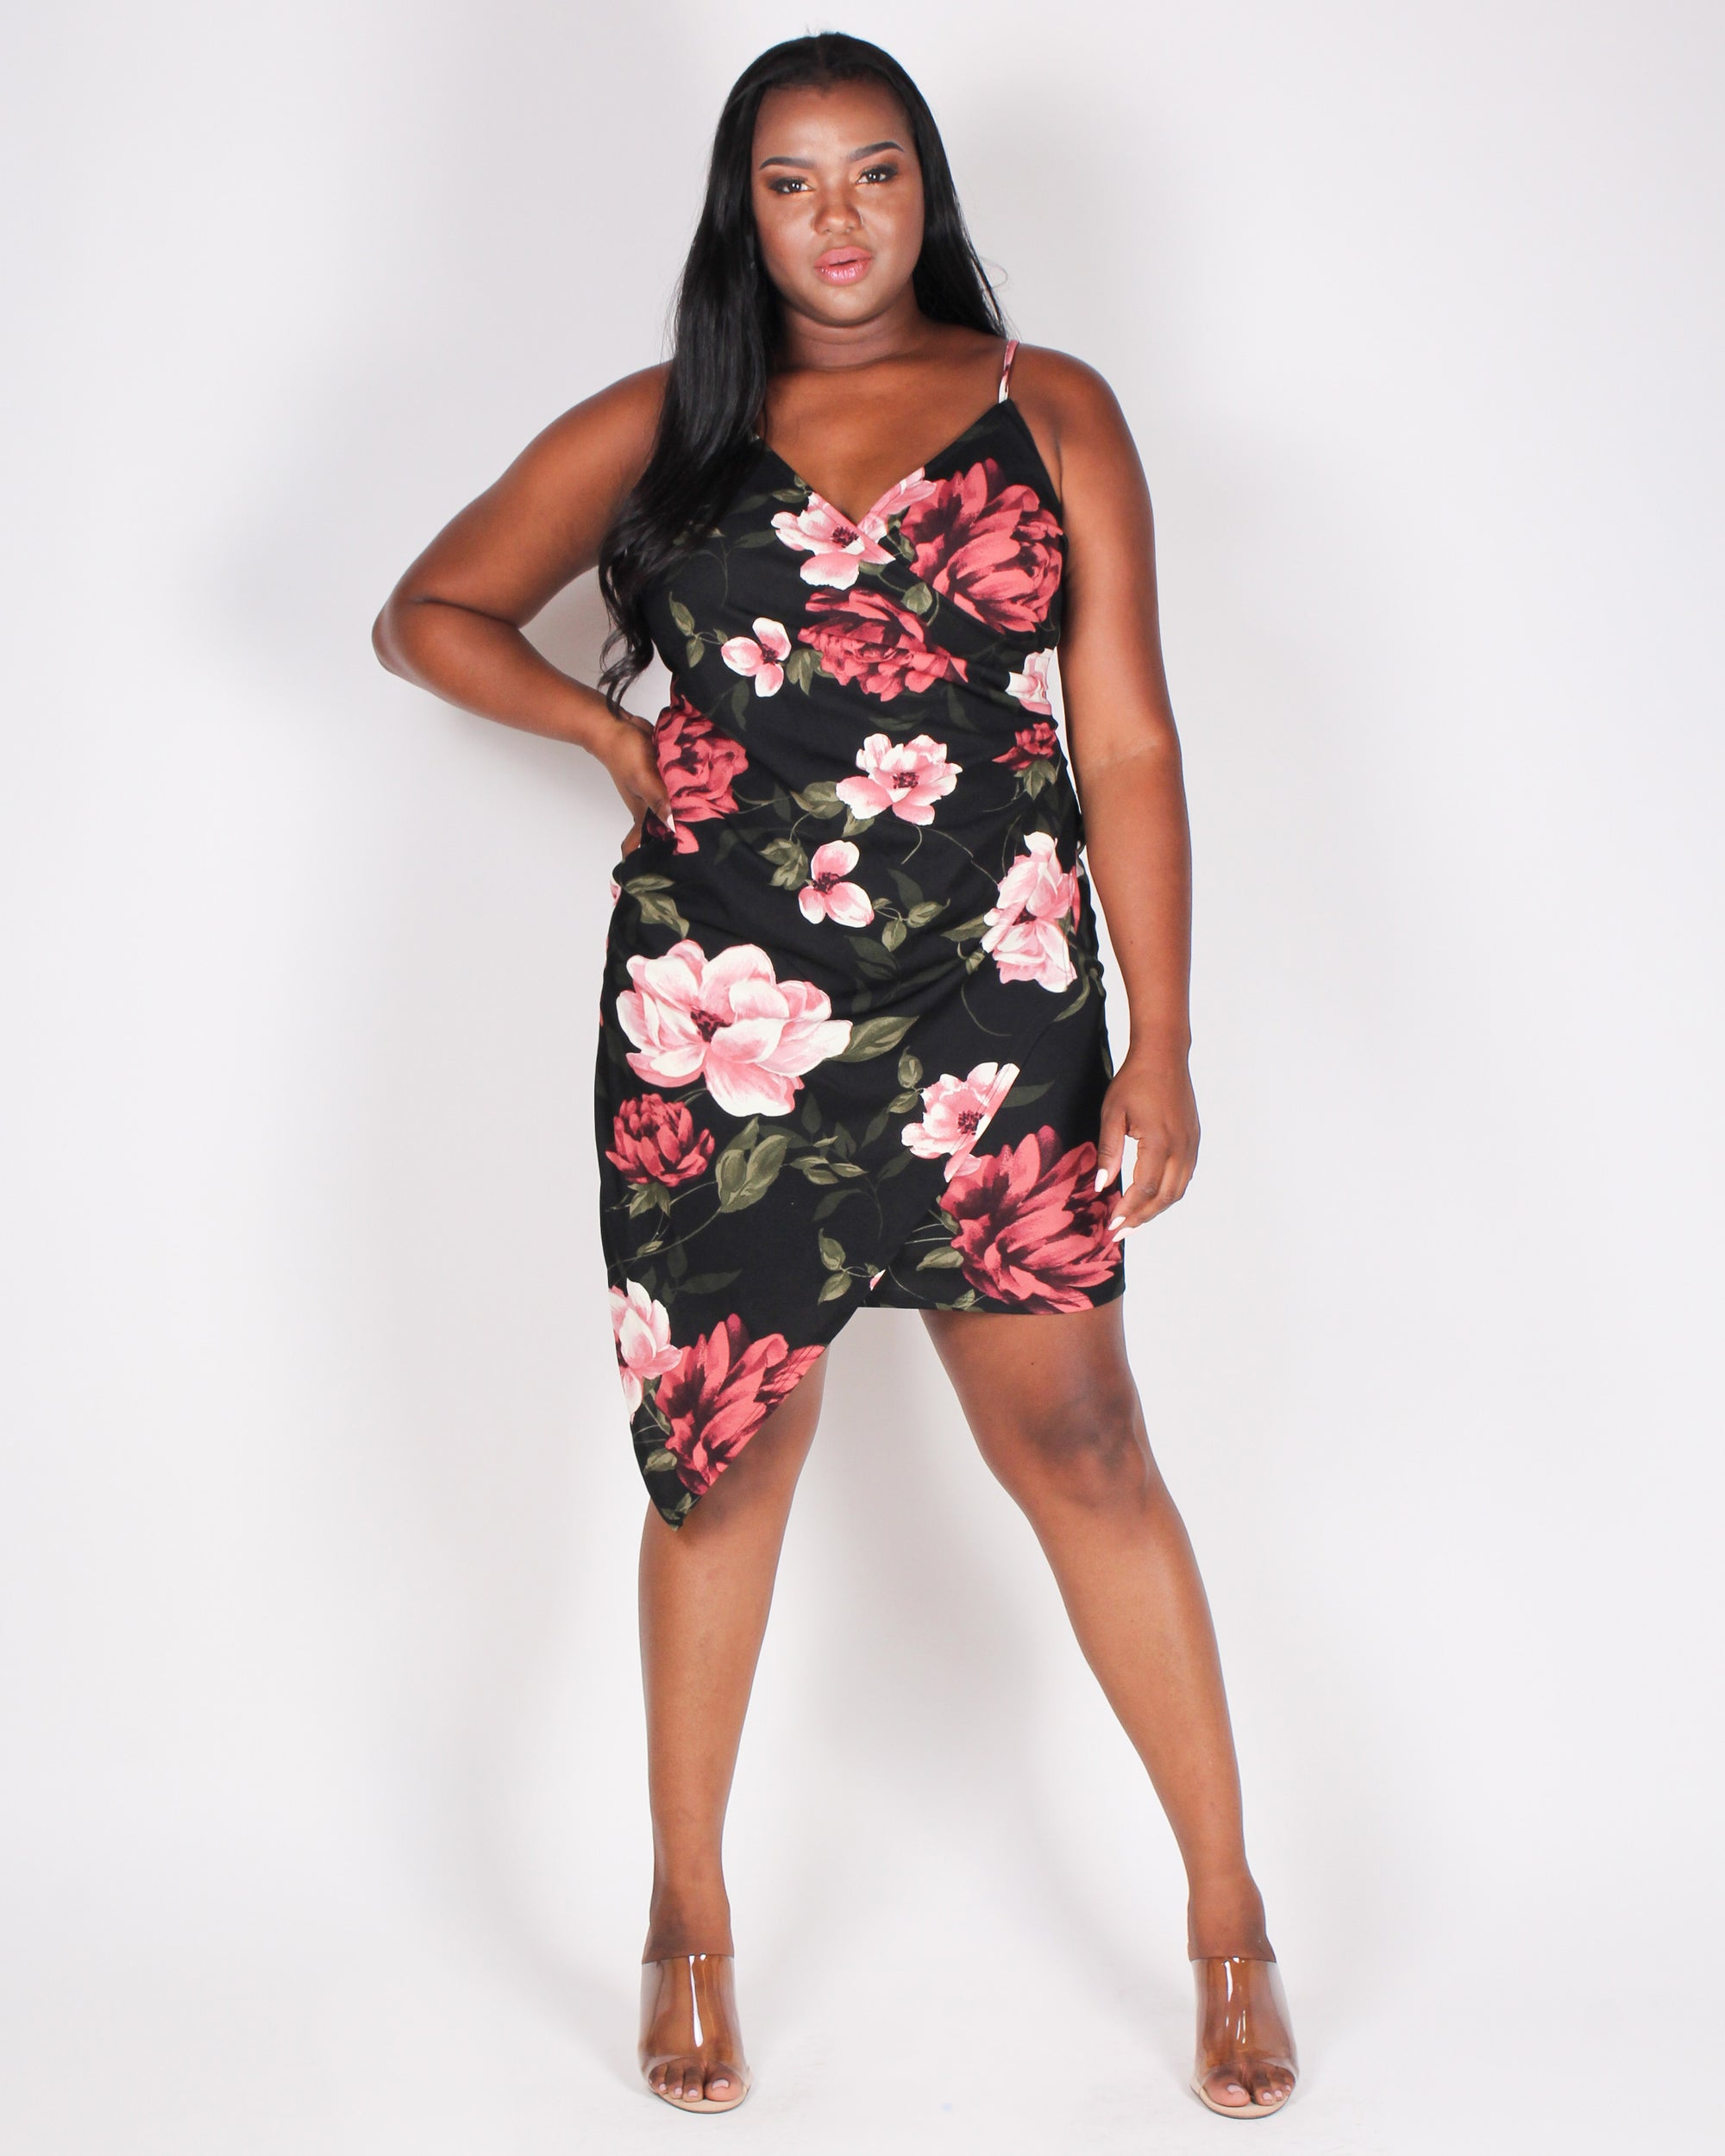 Fashion Q Shop Q Determined to Rise Floral Plus Bodycon Dress (Black) Z9773P